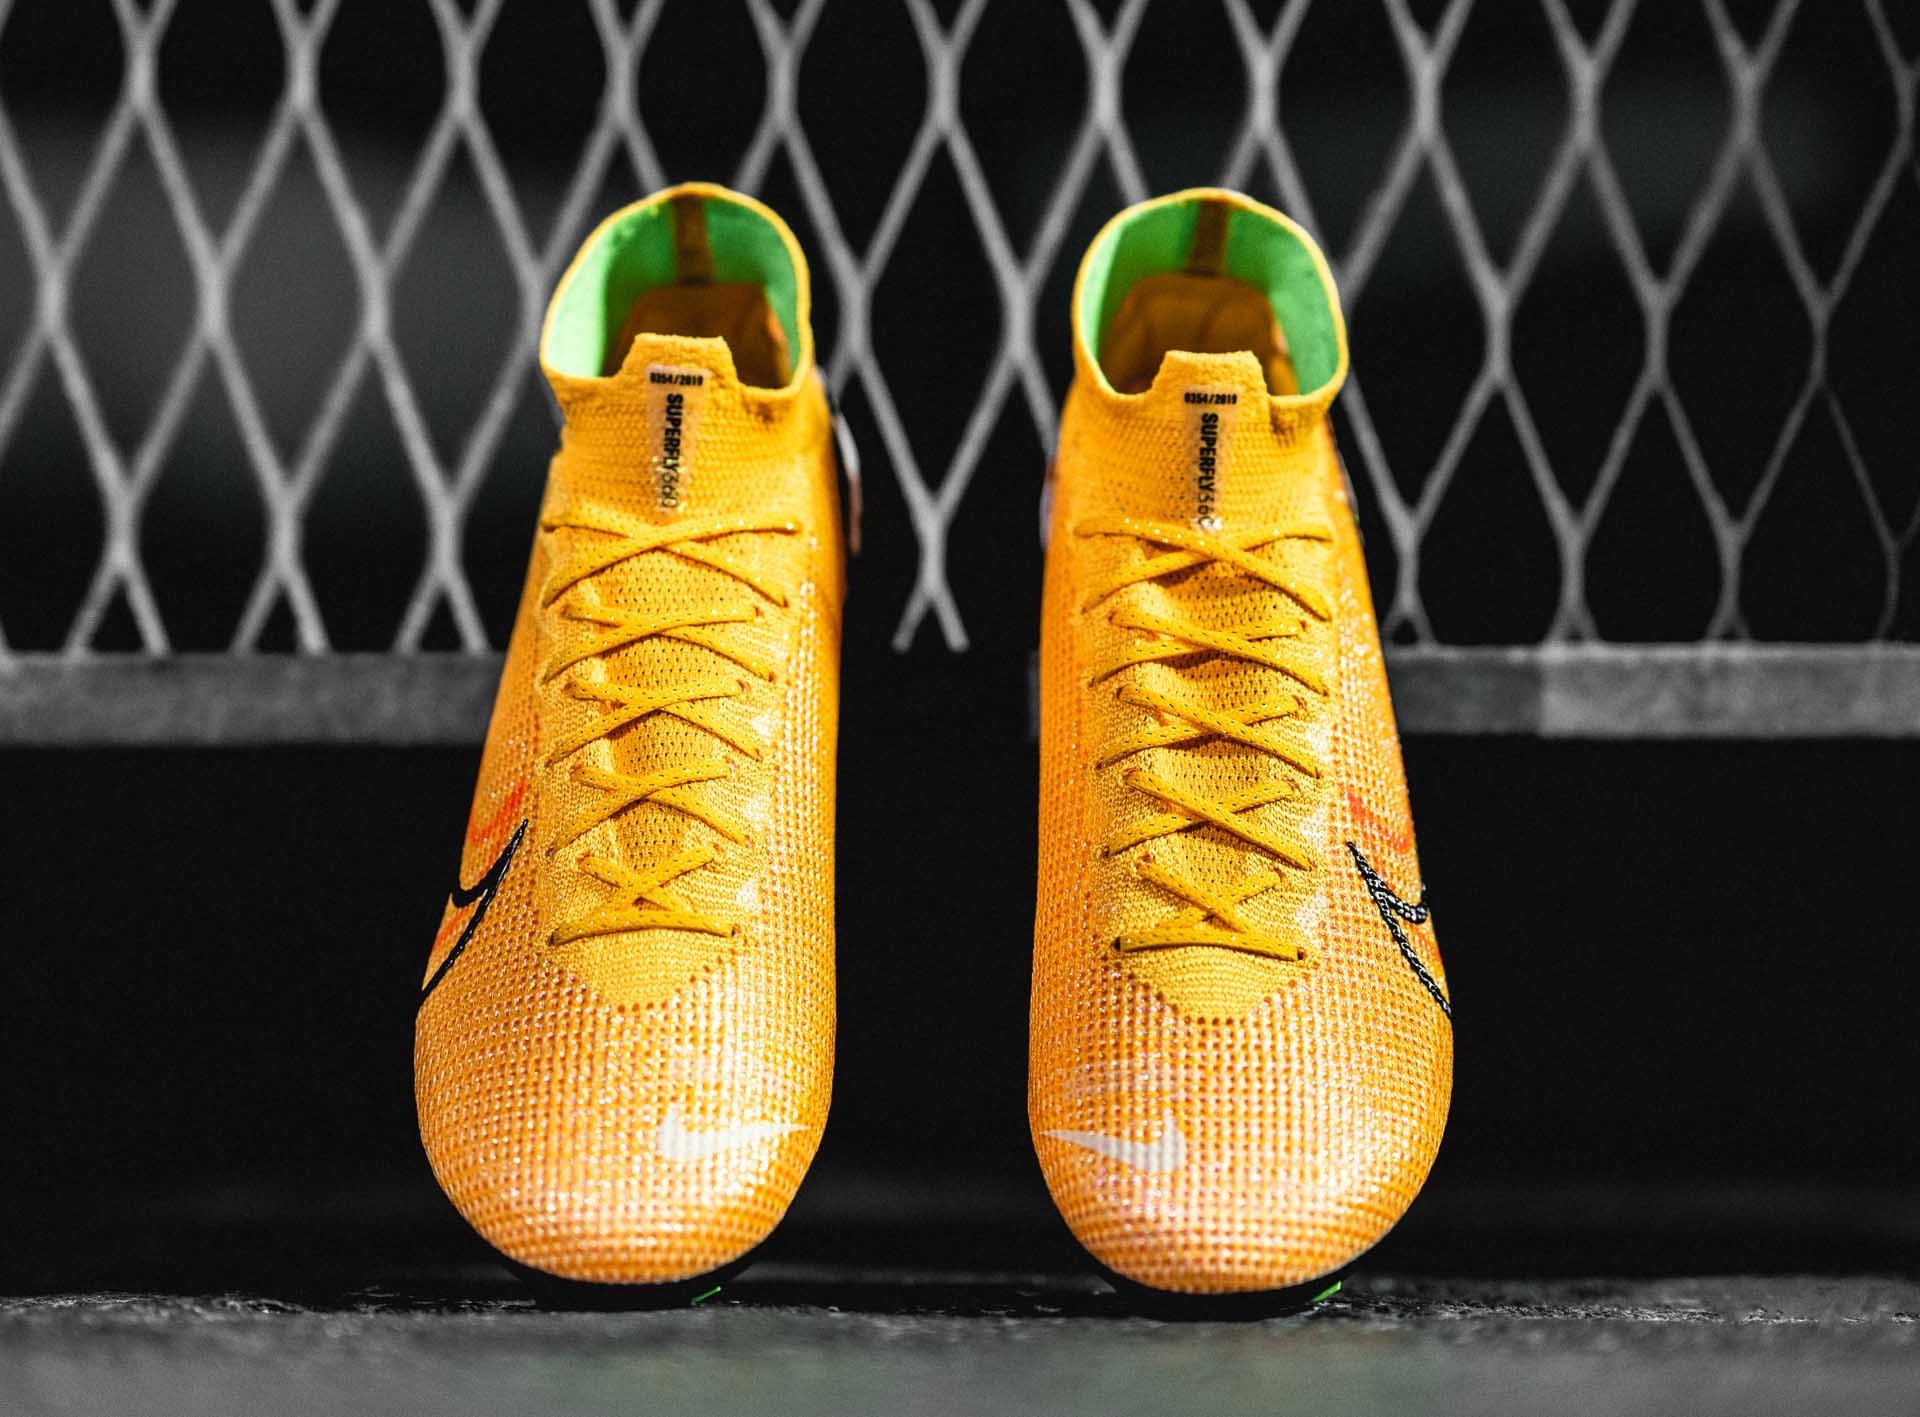 11-nike-mercurial-superfly-vii-orange-min.jpg